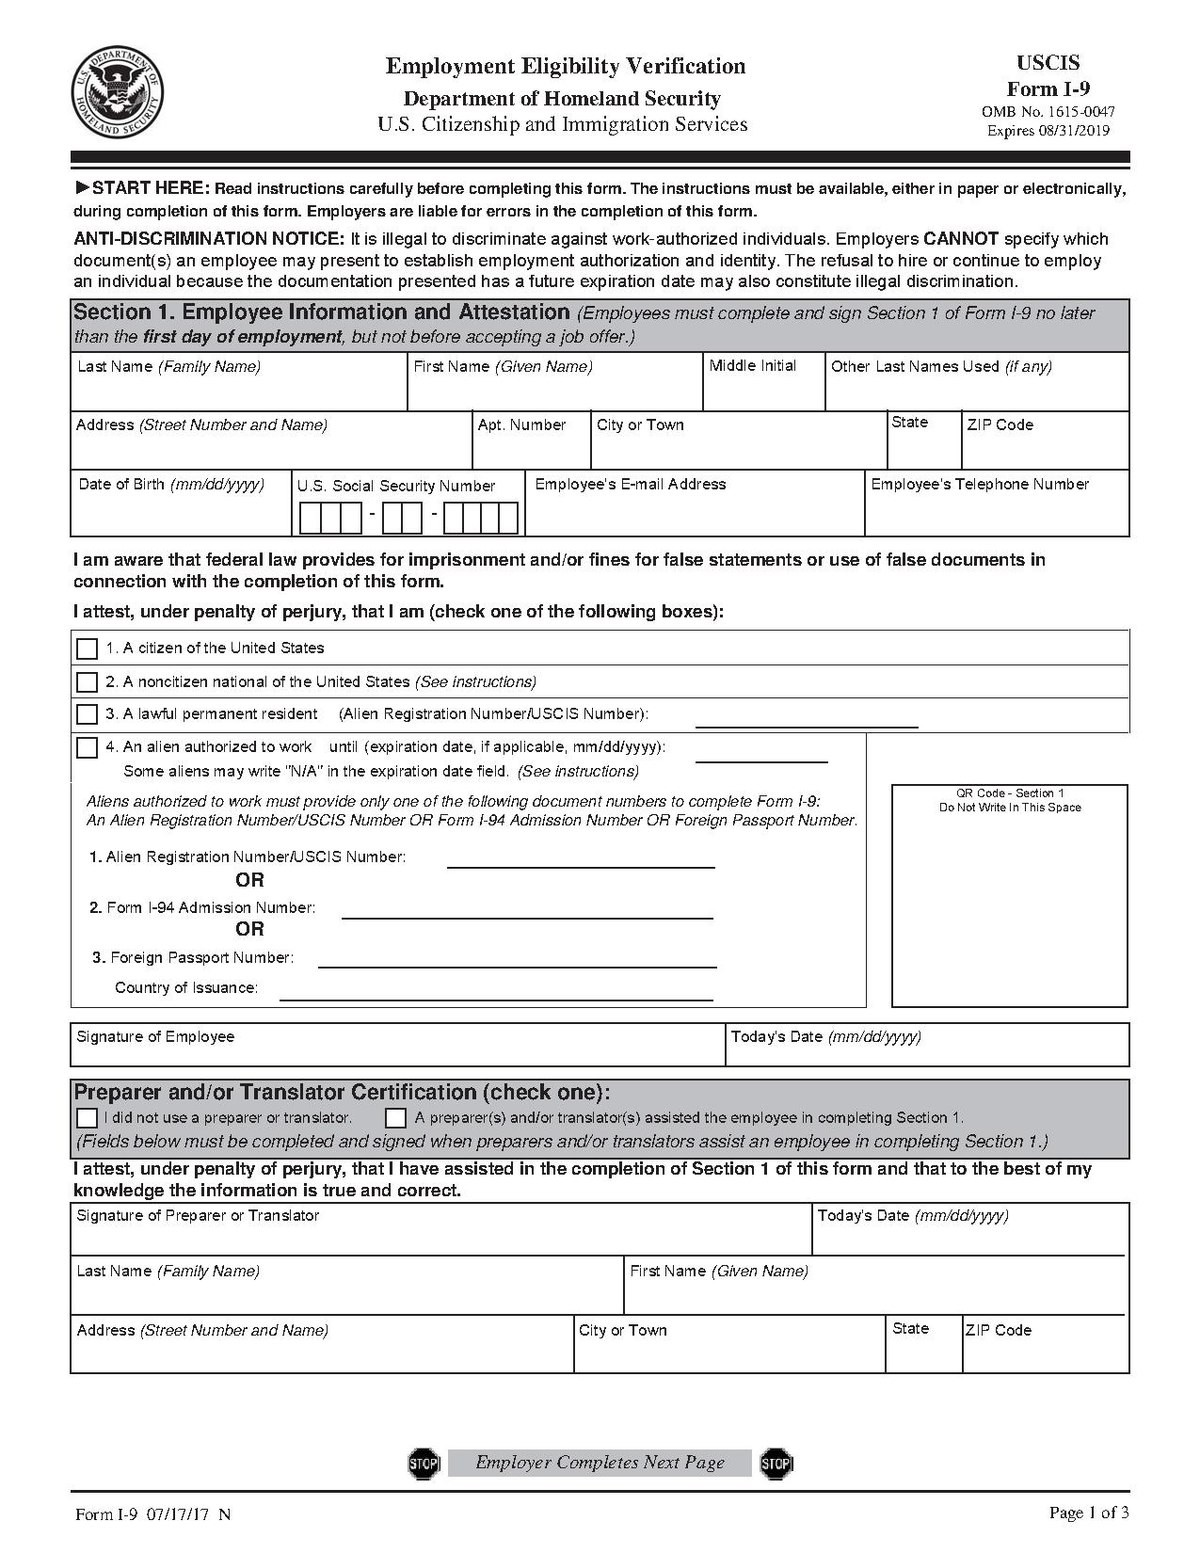 form i-9 issuing authority  Form I-9 - Wikipedia - form i-9 issuing authority